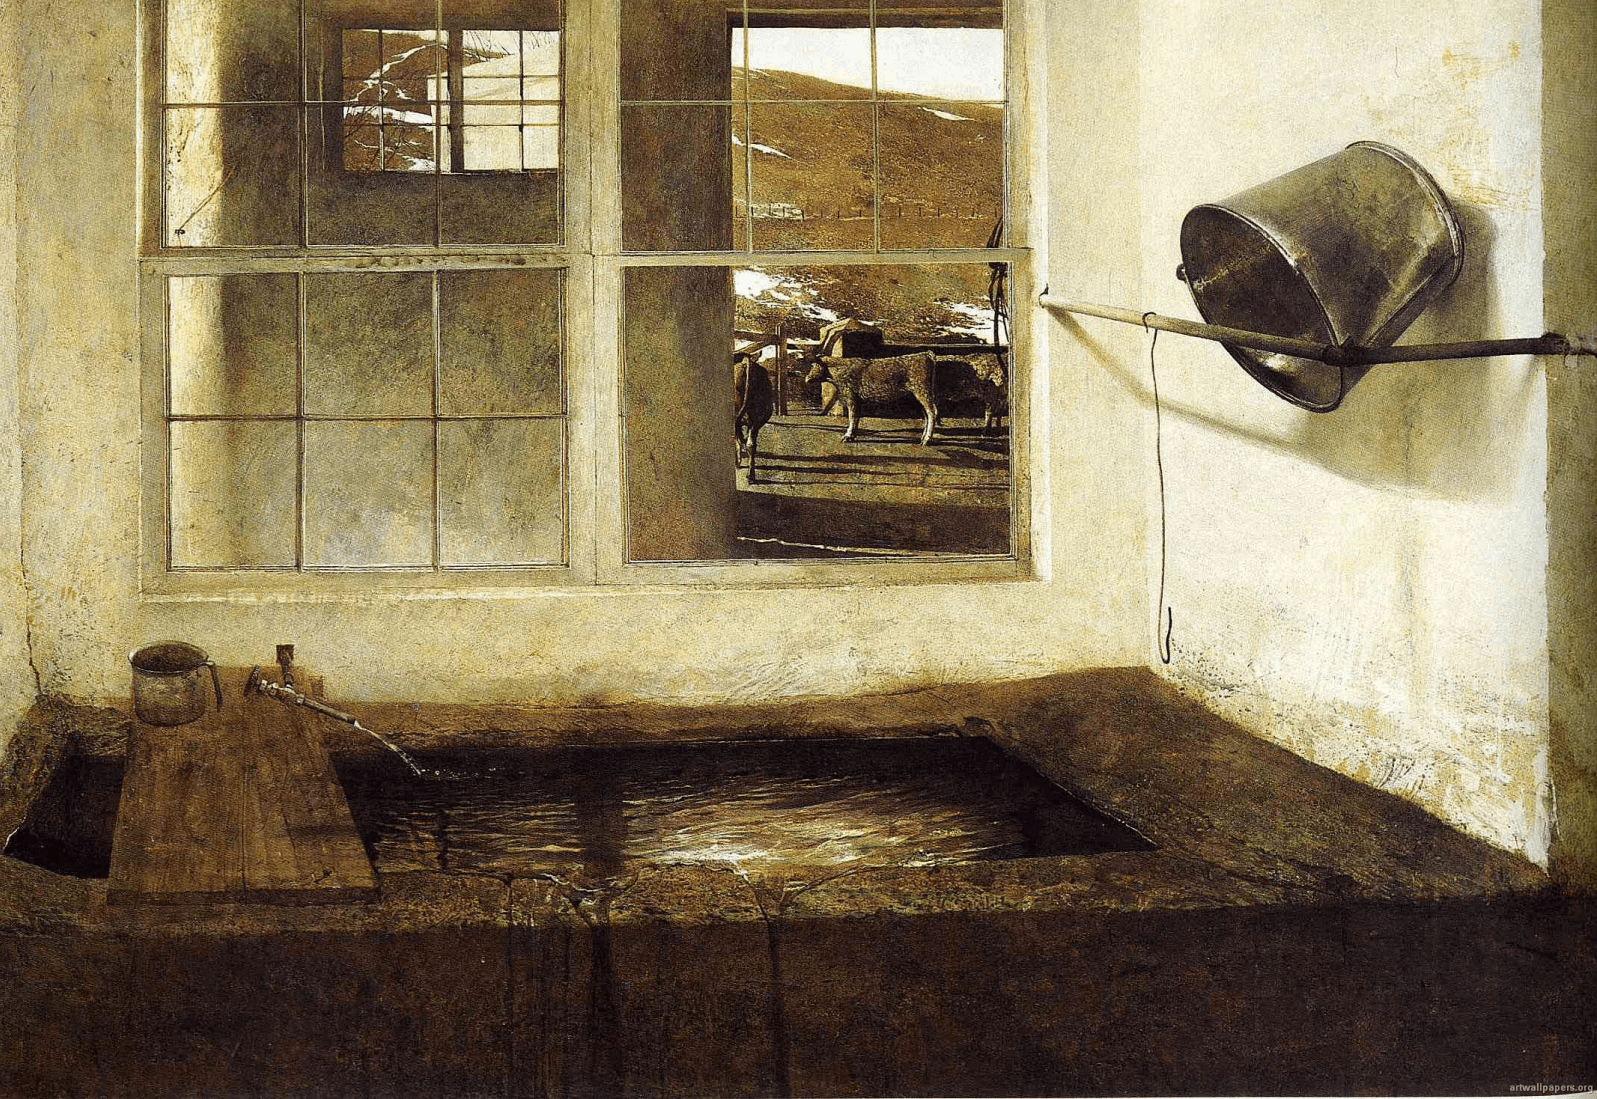 Andrew Wyeth, Spring Fed, 1967, tempera on panel, 27.5 x 39.5 inches (collection of Mr. and Mrs. W. D. Weiss (© 2017 Andrew Wyeth/Artists Rights Society (ARS))